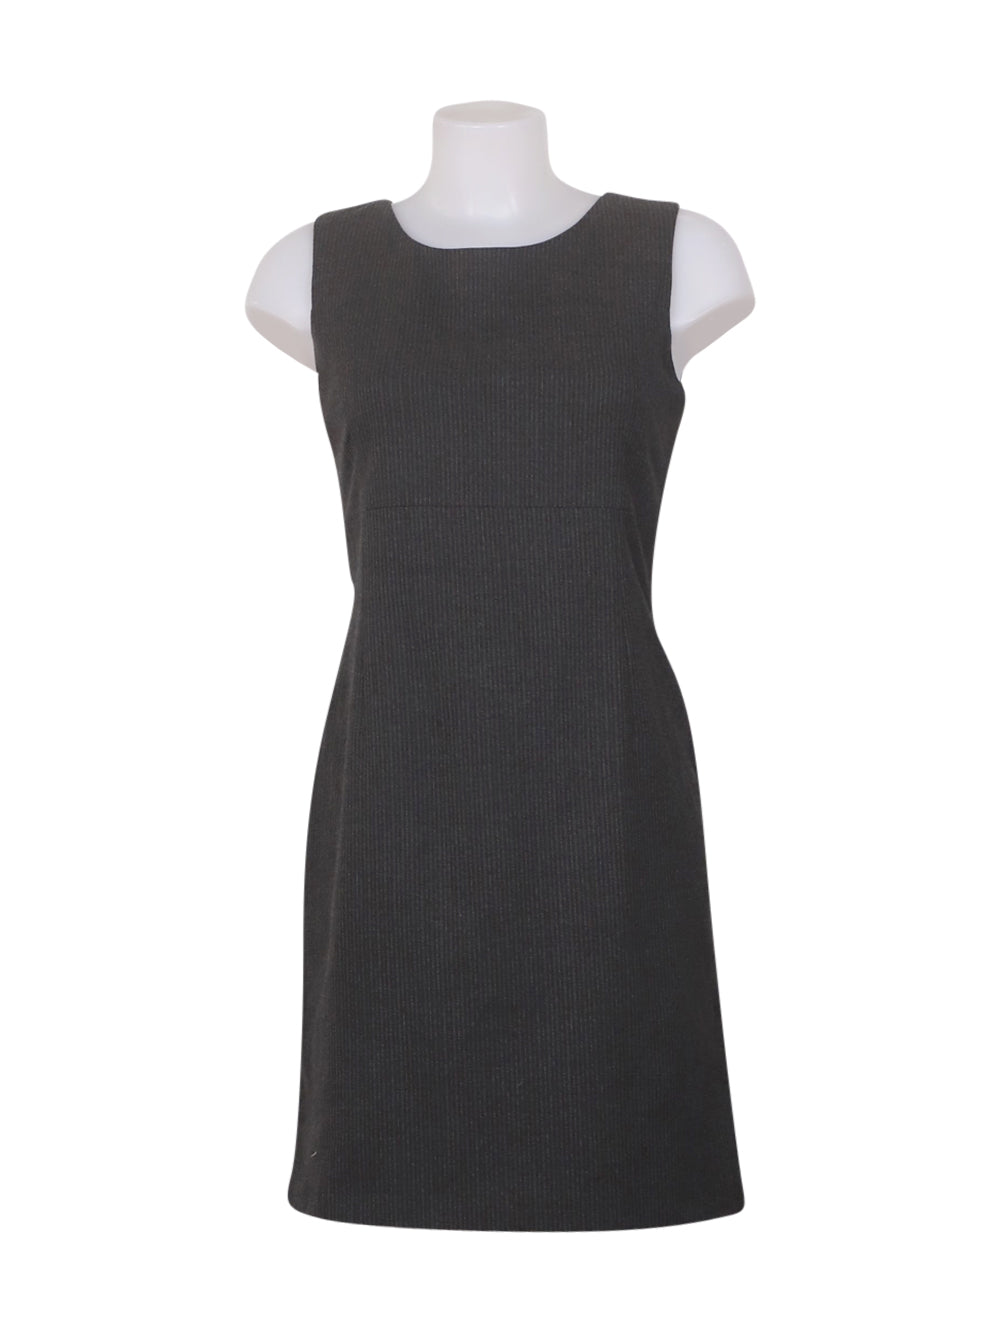 Front photo of Preloved Orsay Black Woman's dress - size 8/S